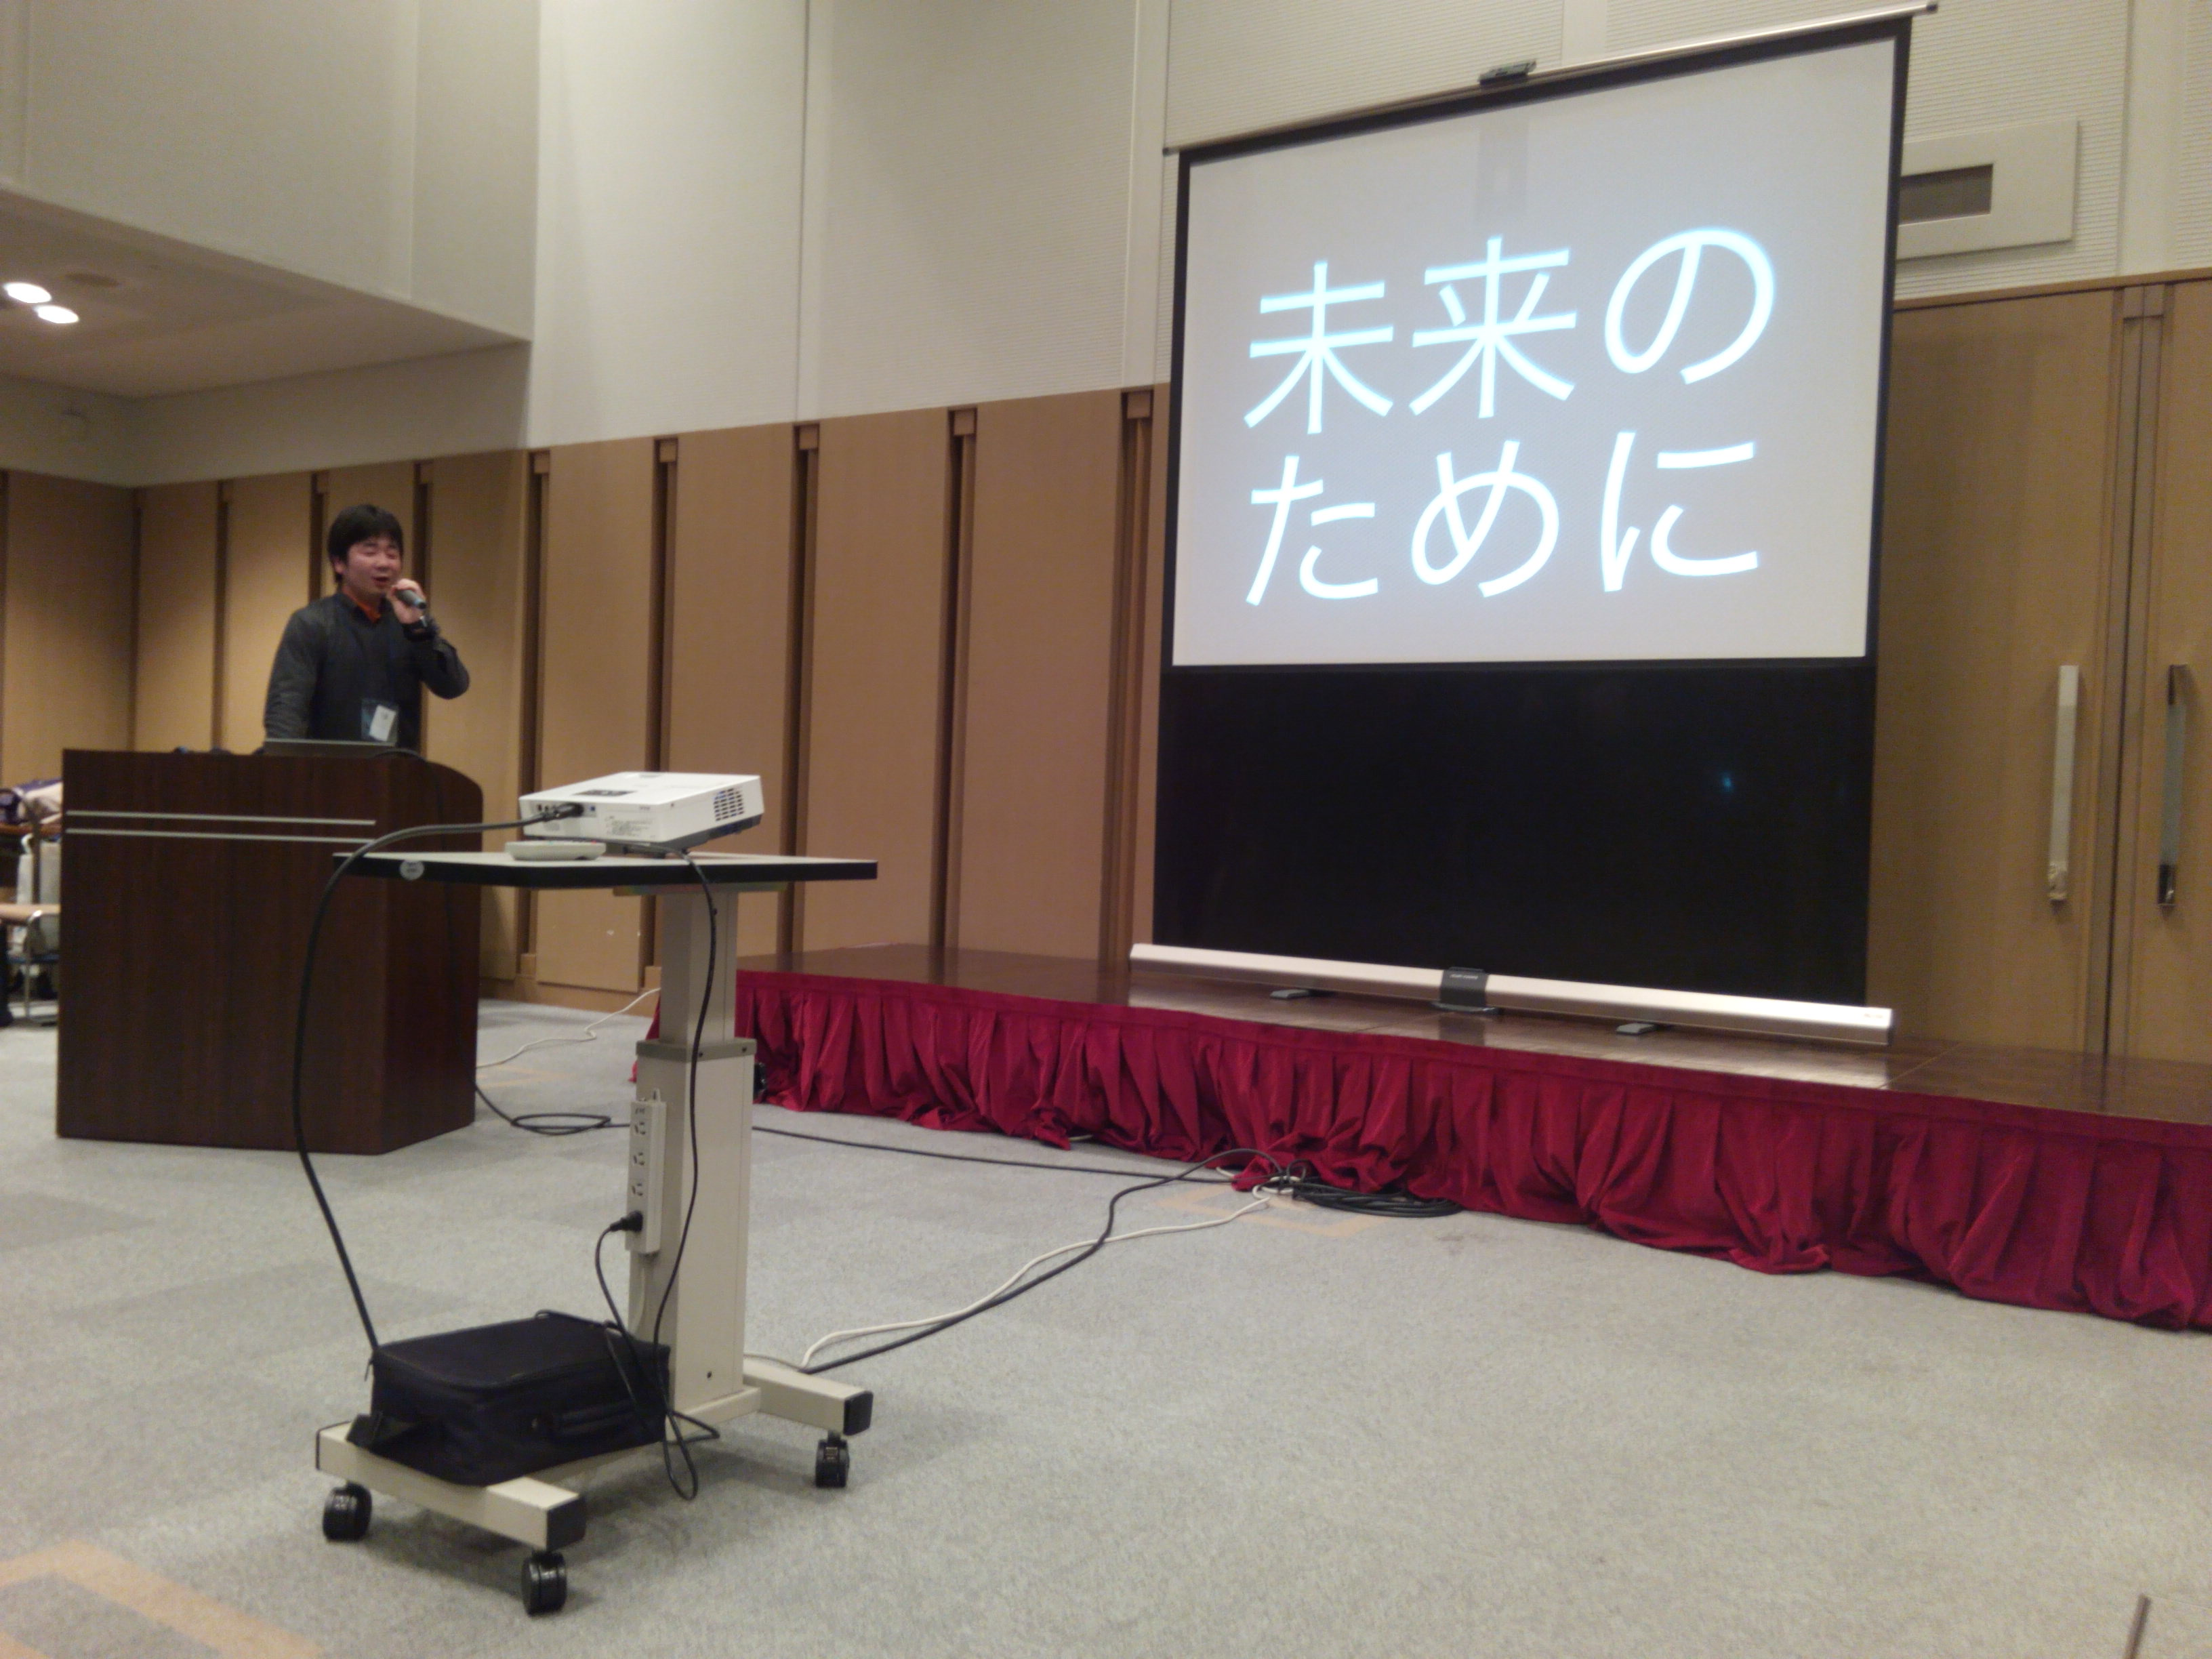 FUKUOKA MEETUP COMMUNITY Presentations